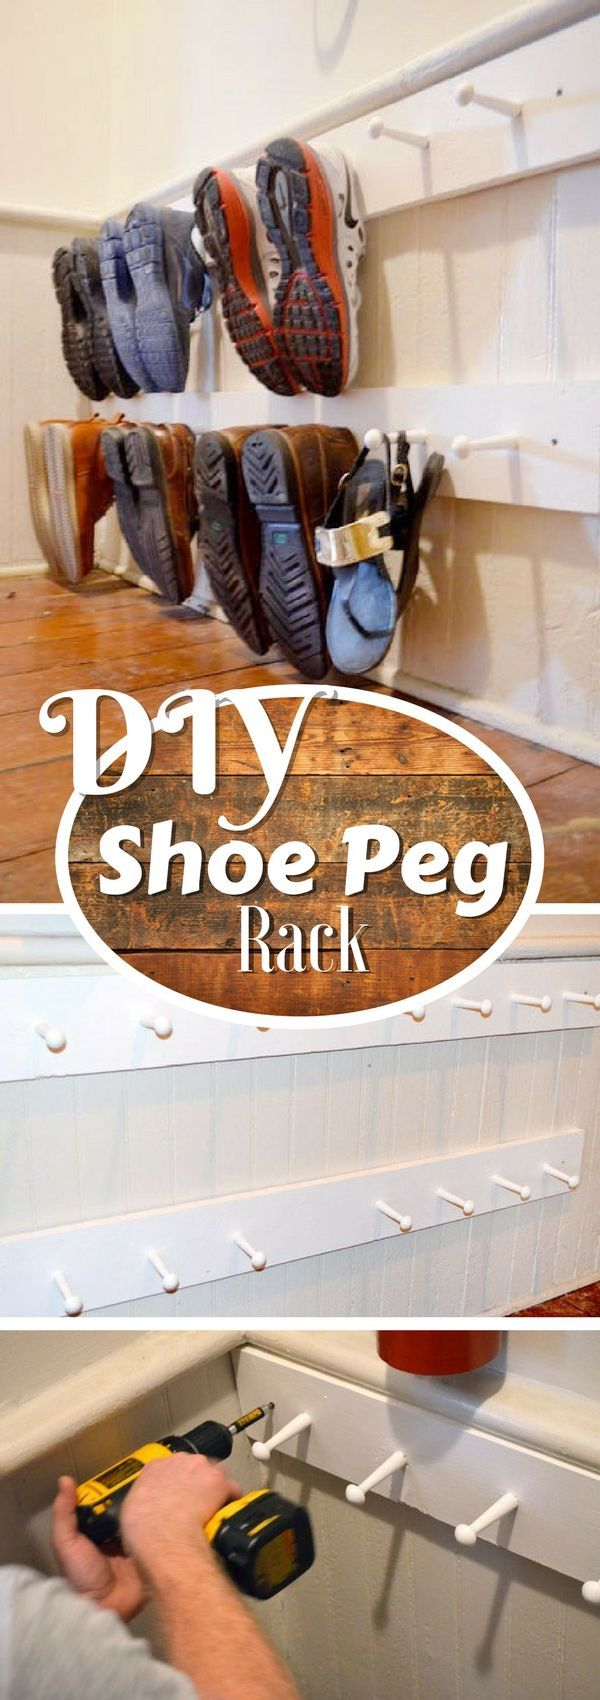 Check out this easy idea on how to build a #DIY shoe peg rack #homedecor #budget #project @istandarddesign